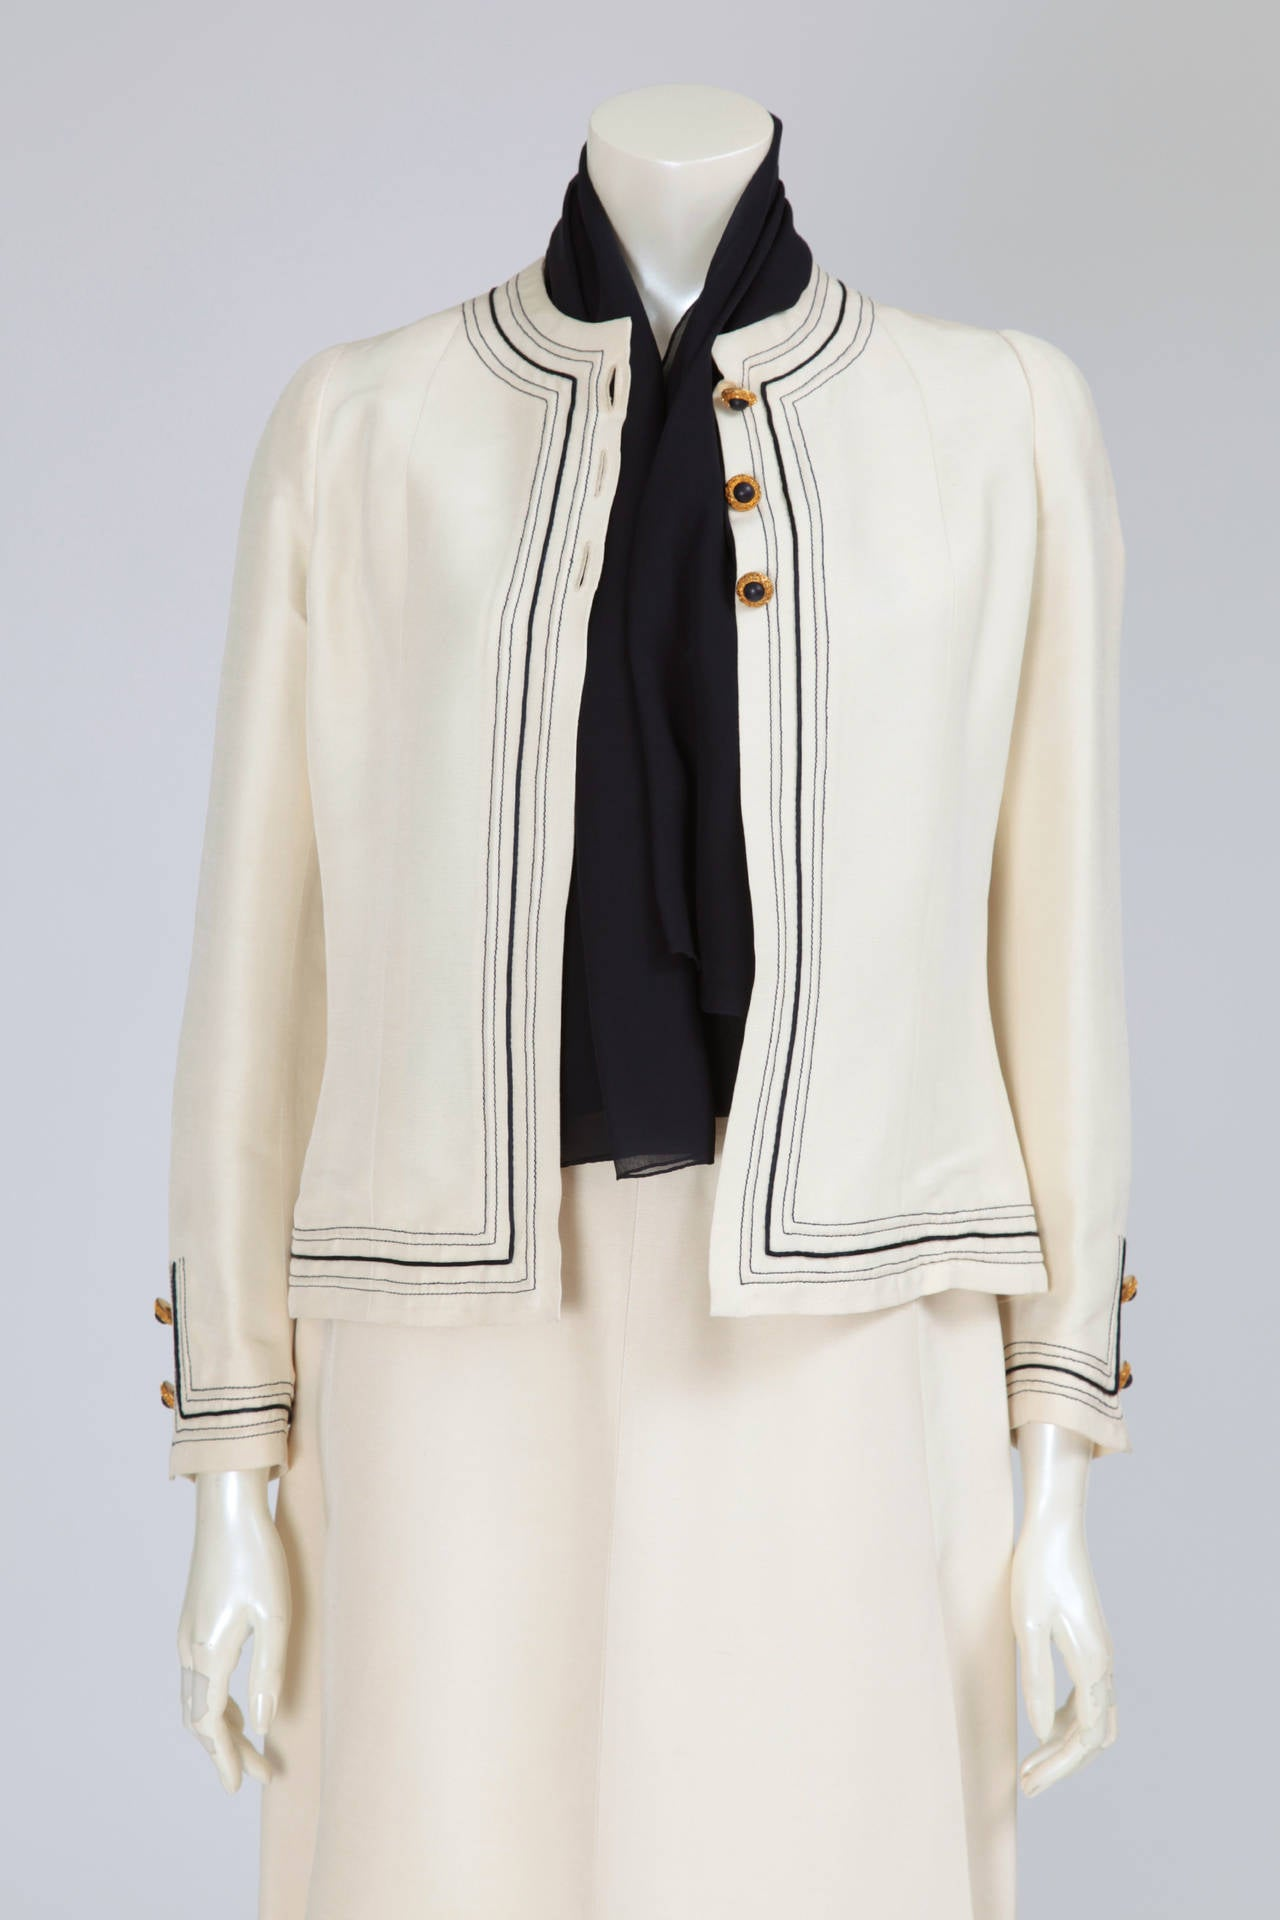 A refined classic skirt suit, labelled and numbered n° 48765 and n° 48767. This timeless piece of Chanel haute couture is composed of a jacket, a skirt and a blouse. The blouse is made of dark blue silk chiffon, with an optional tie, while the